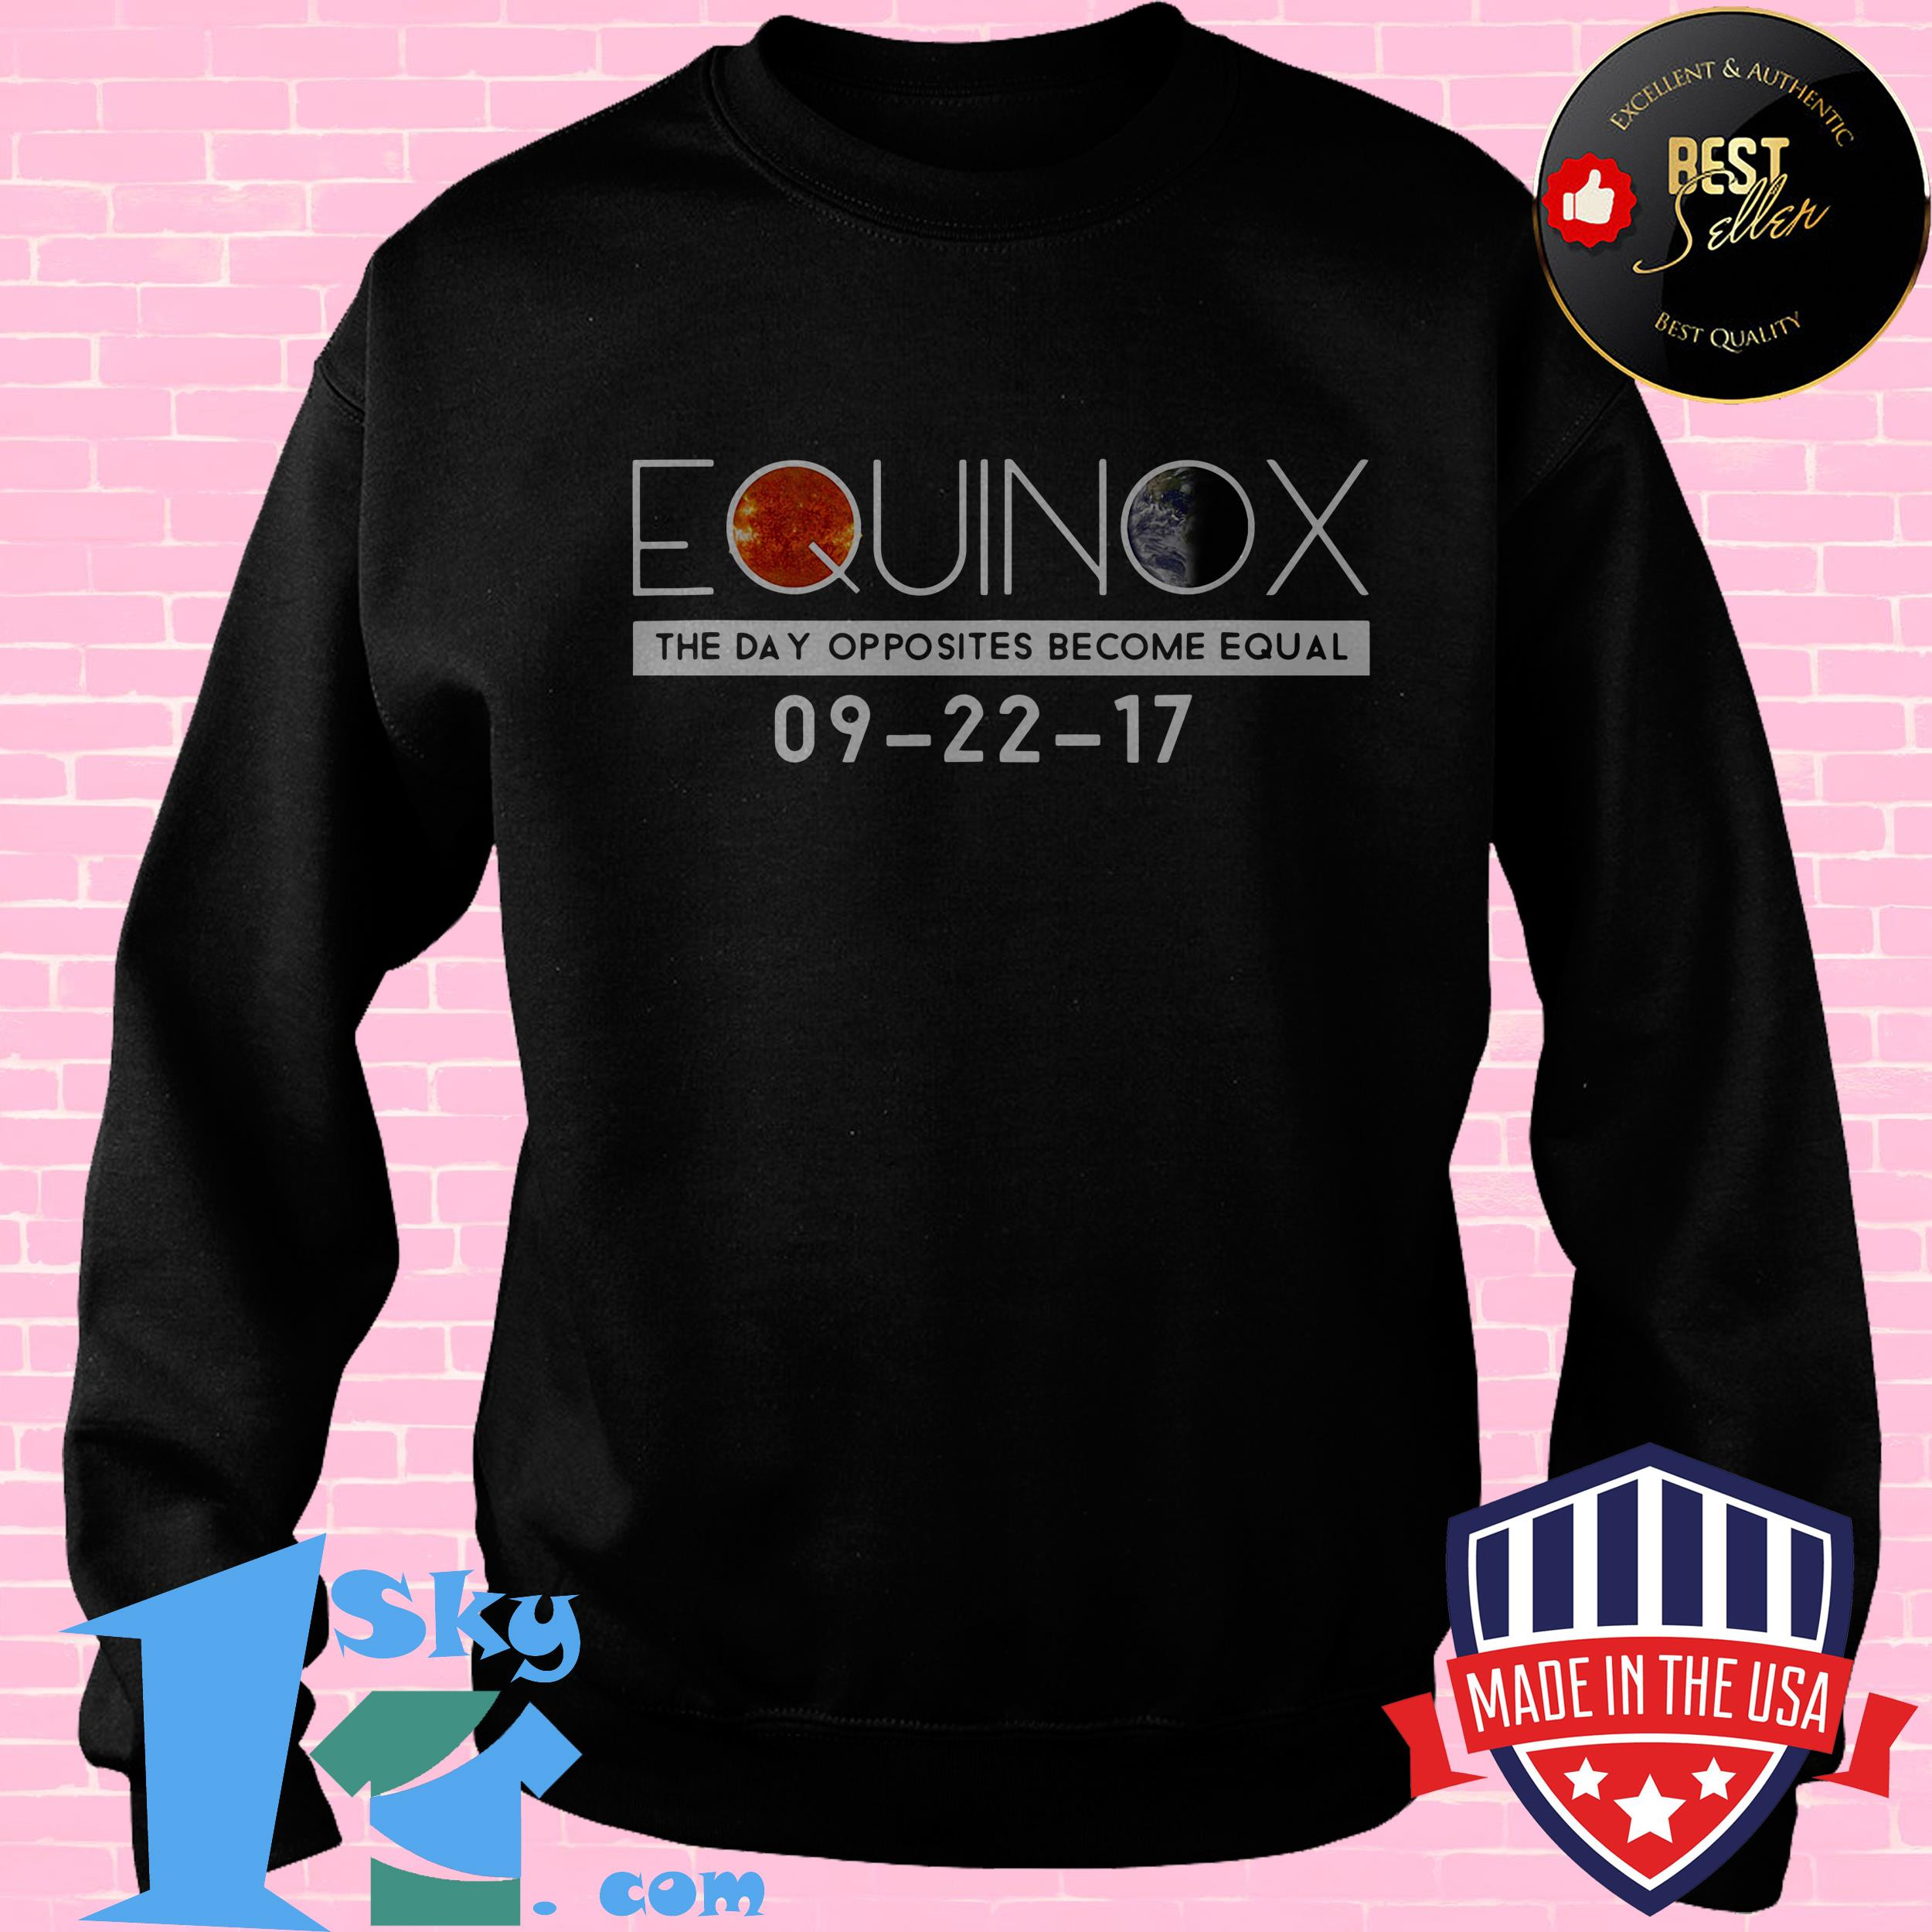 equinox the day opposites become equal 092217 sweatshirt - Equinox The Day Opposites Become Equal 092217 shirt